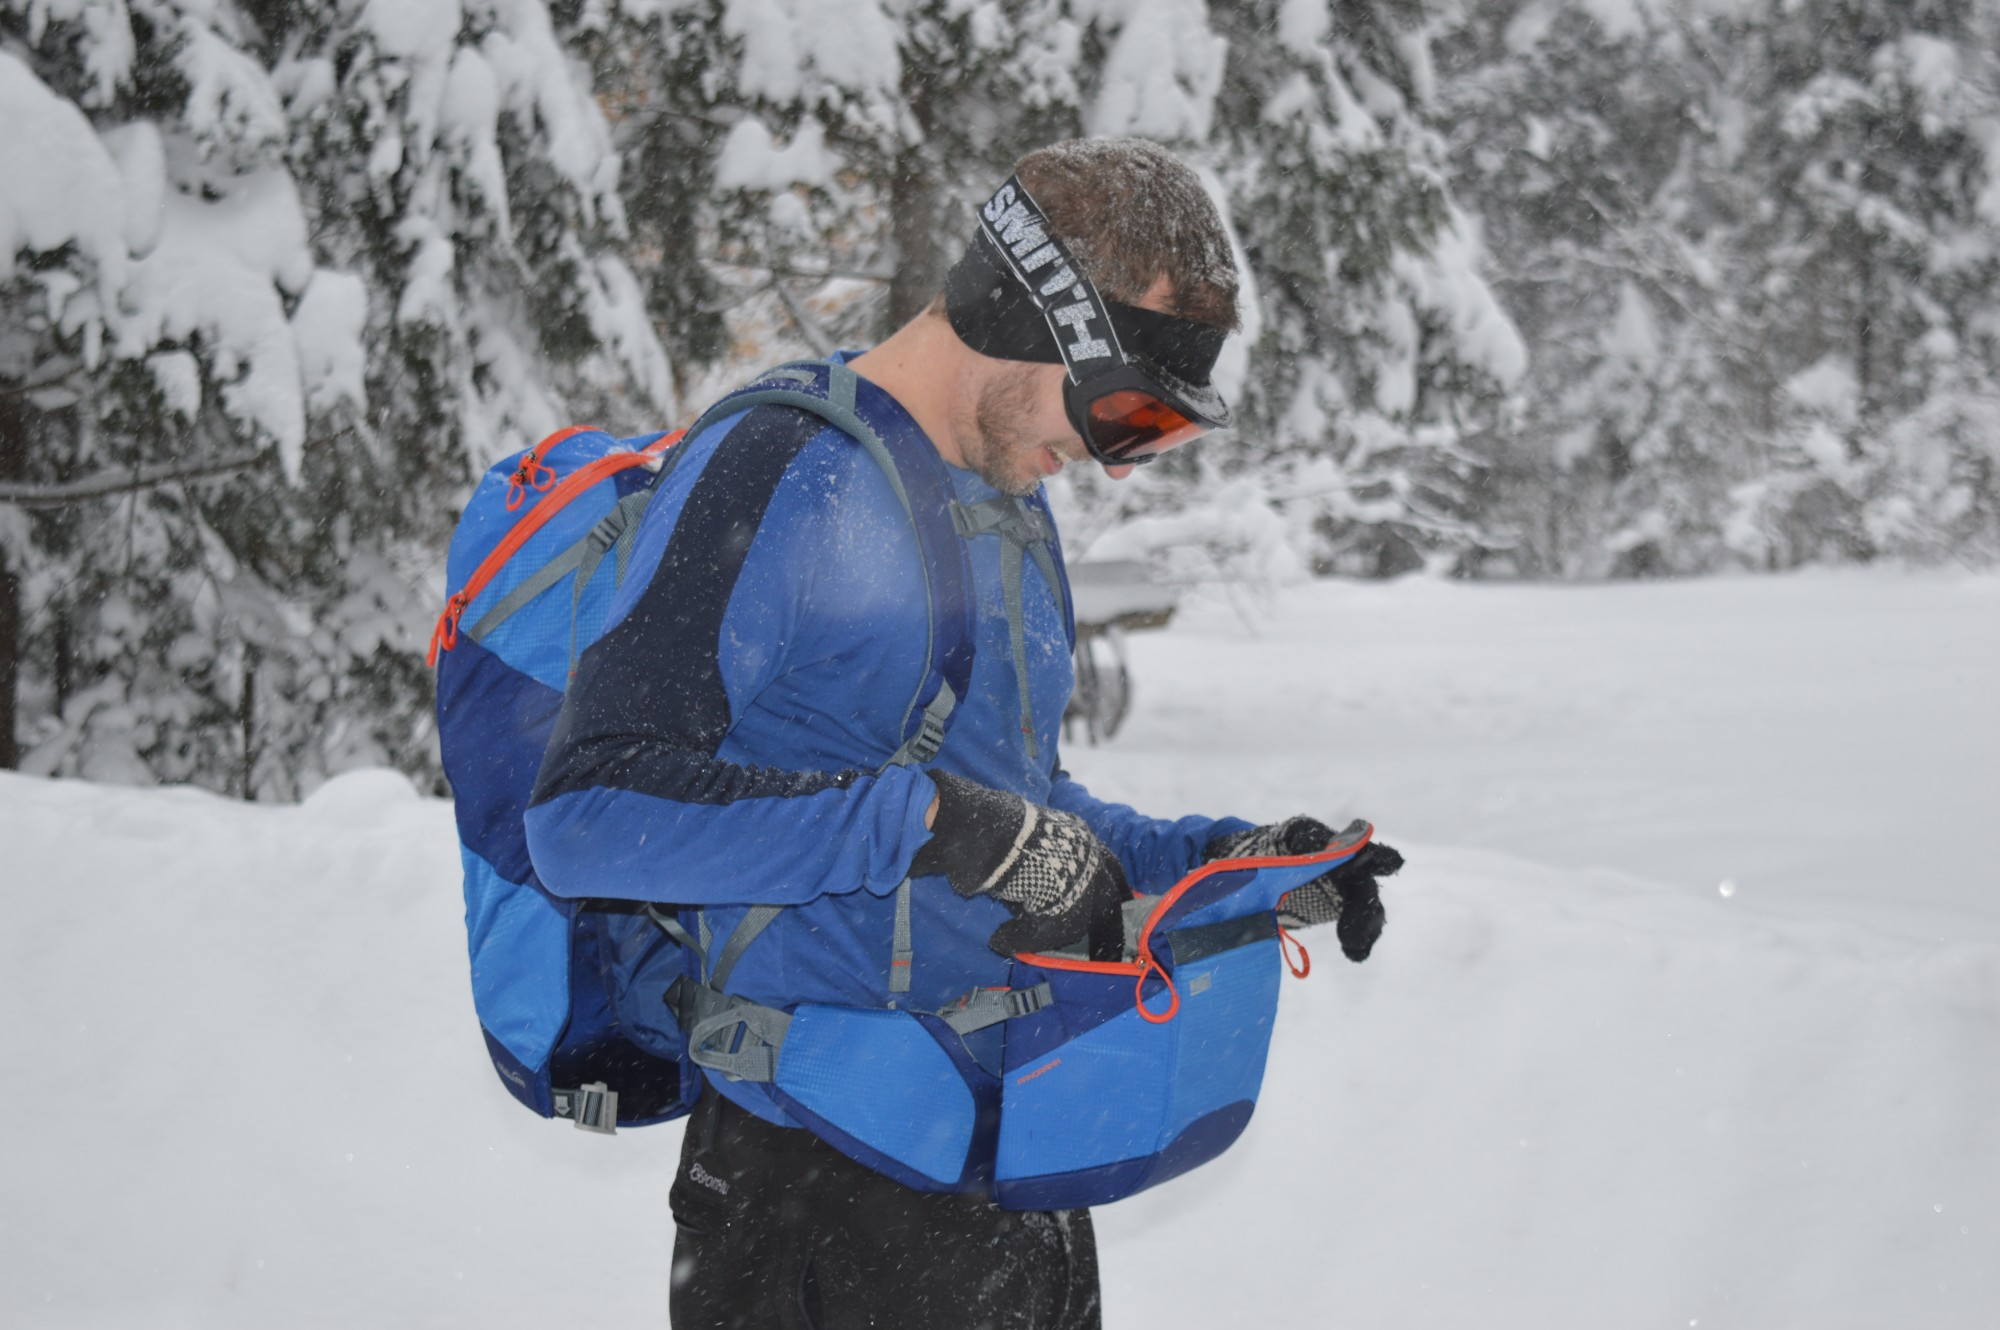 c4841e5e0 Gear Review: MindShift Rotation 180 Panorama Pack • Snowshoe ...